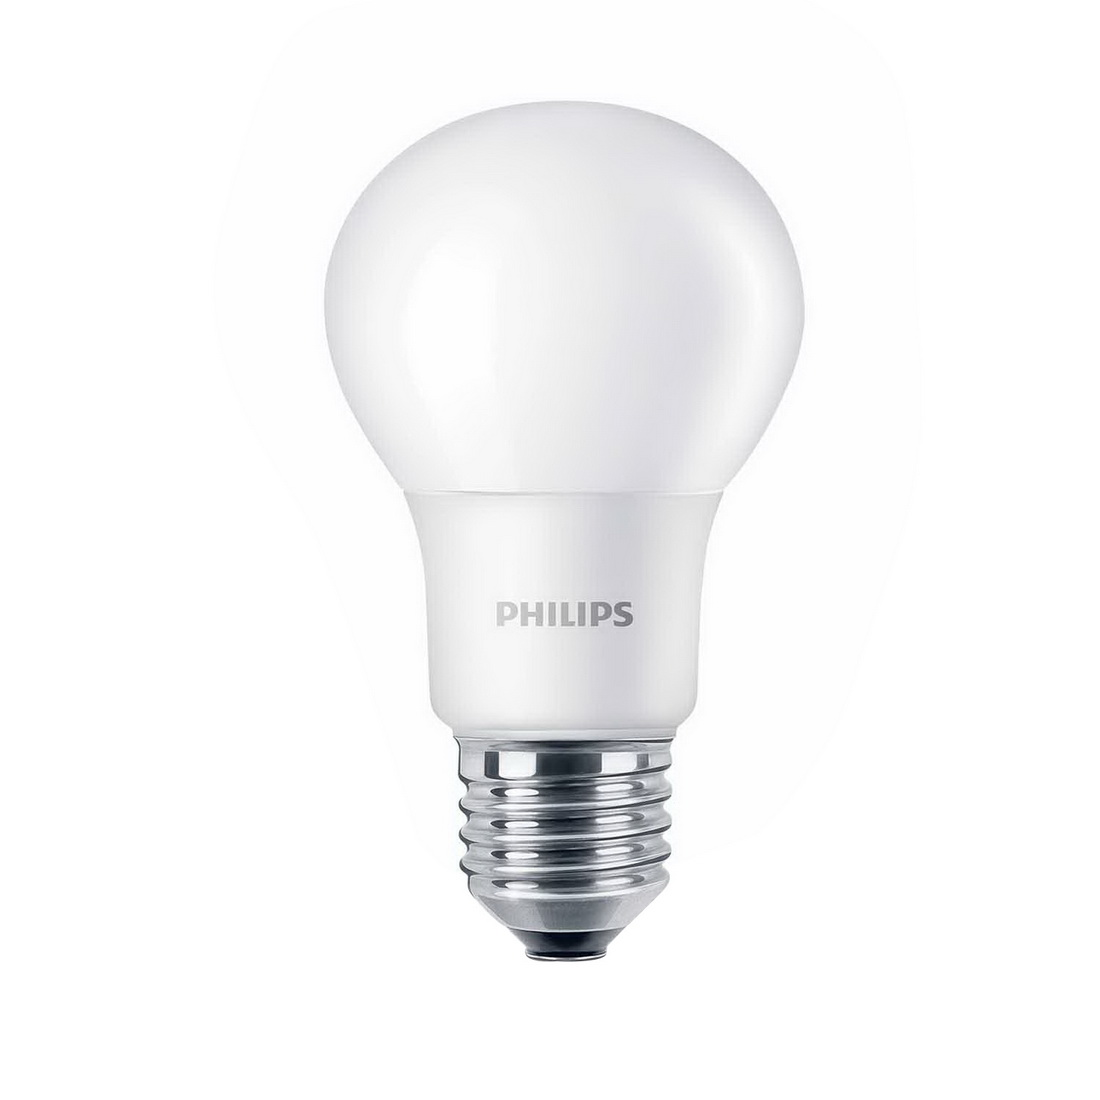 Ezi Living 12W 1360lm B22 6500K Generation 8 A60 Non-Dimmable LED Bulb Cool Daylight